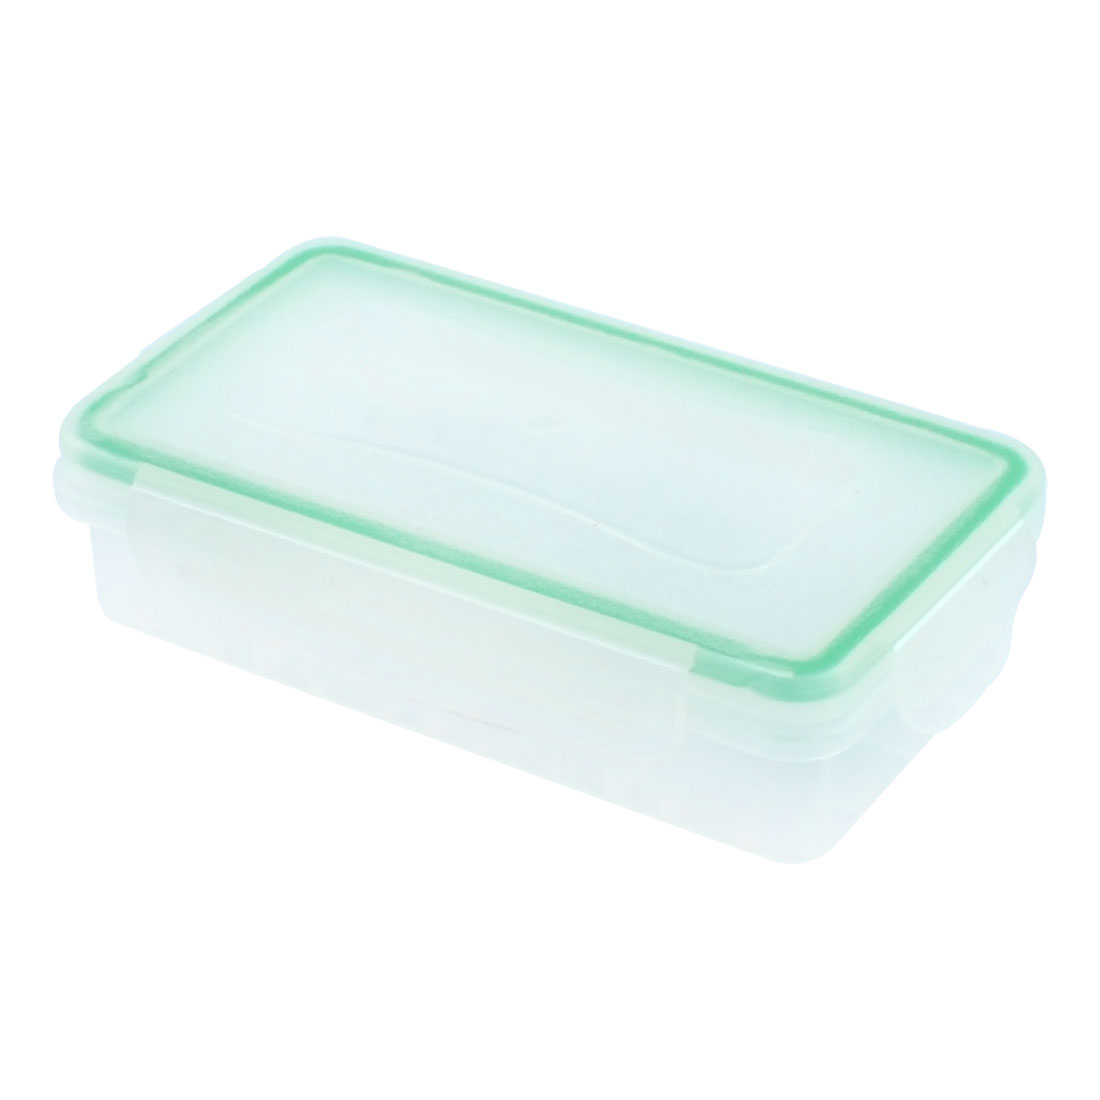 Hard Clear Plastic Battery Protective Storage Compartment for 18650 Batteries